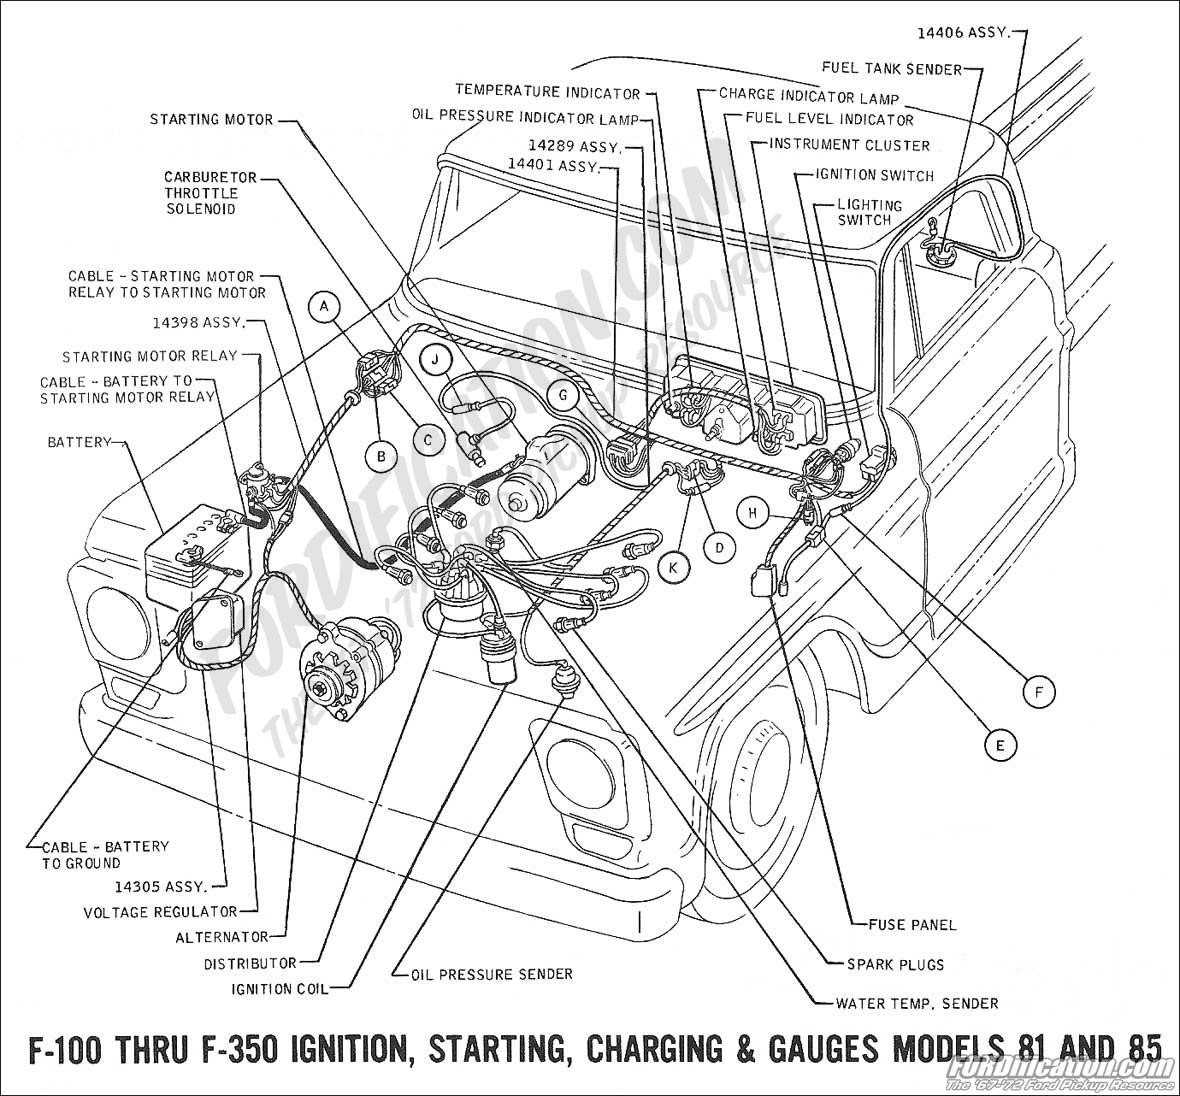 72 ford f 250 ignition wiring diagram get free image about wiring diagram